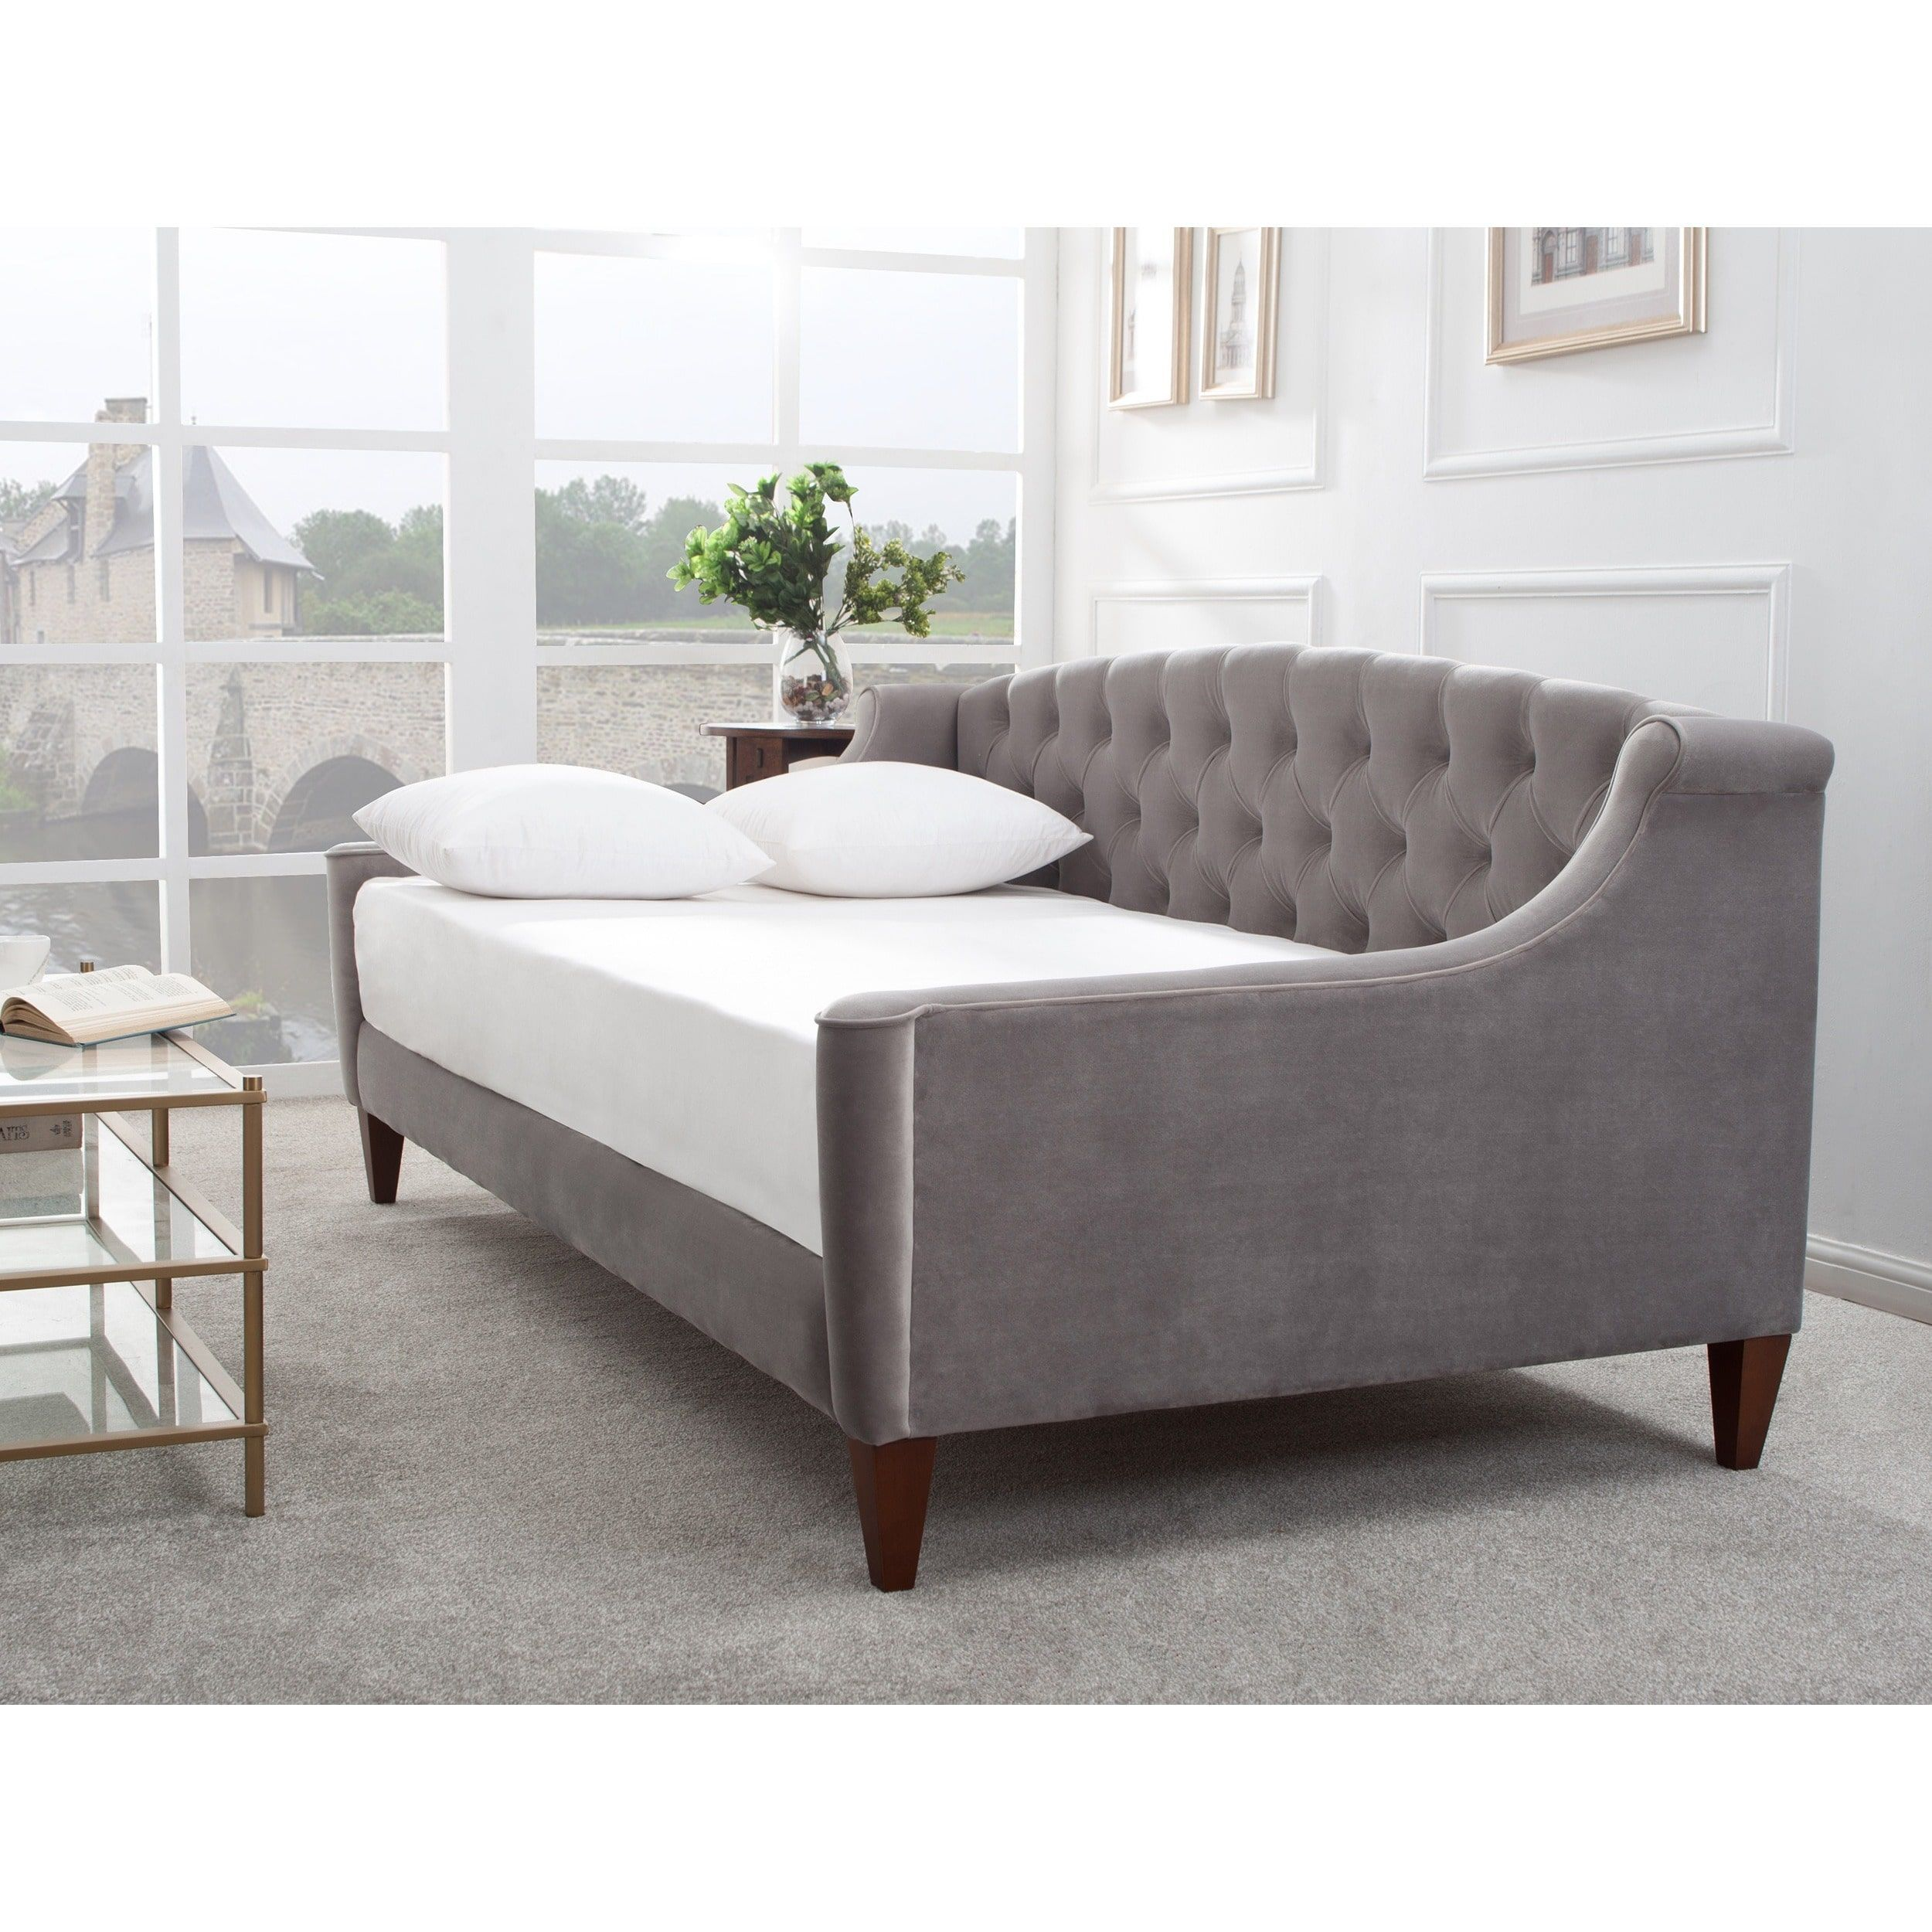 Jennifer Taylor Lucy Upholstered Sofa Bed (estate blue), Size Twin